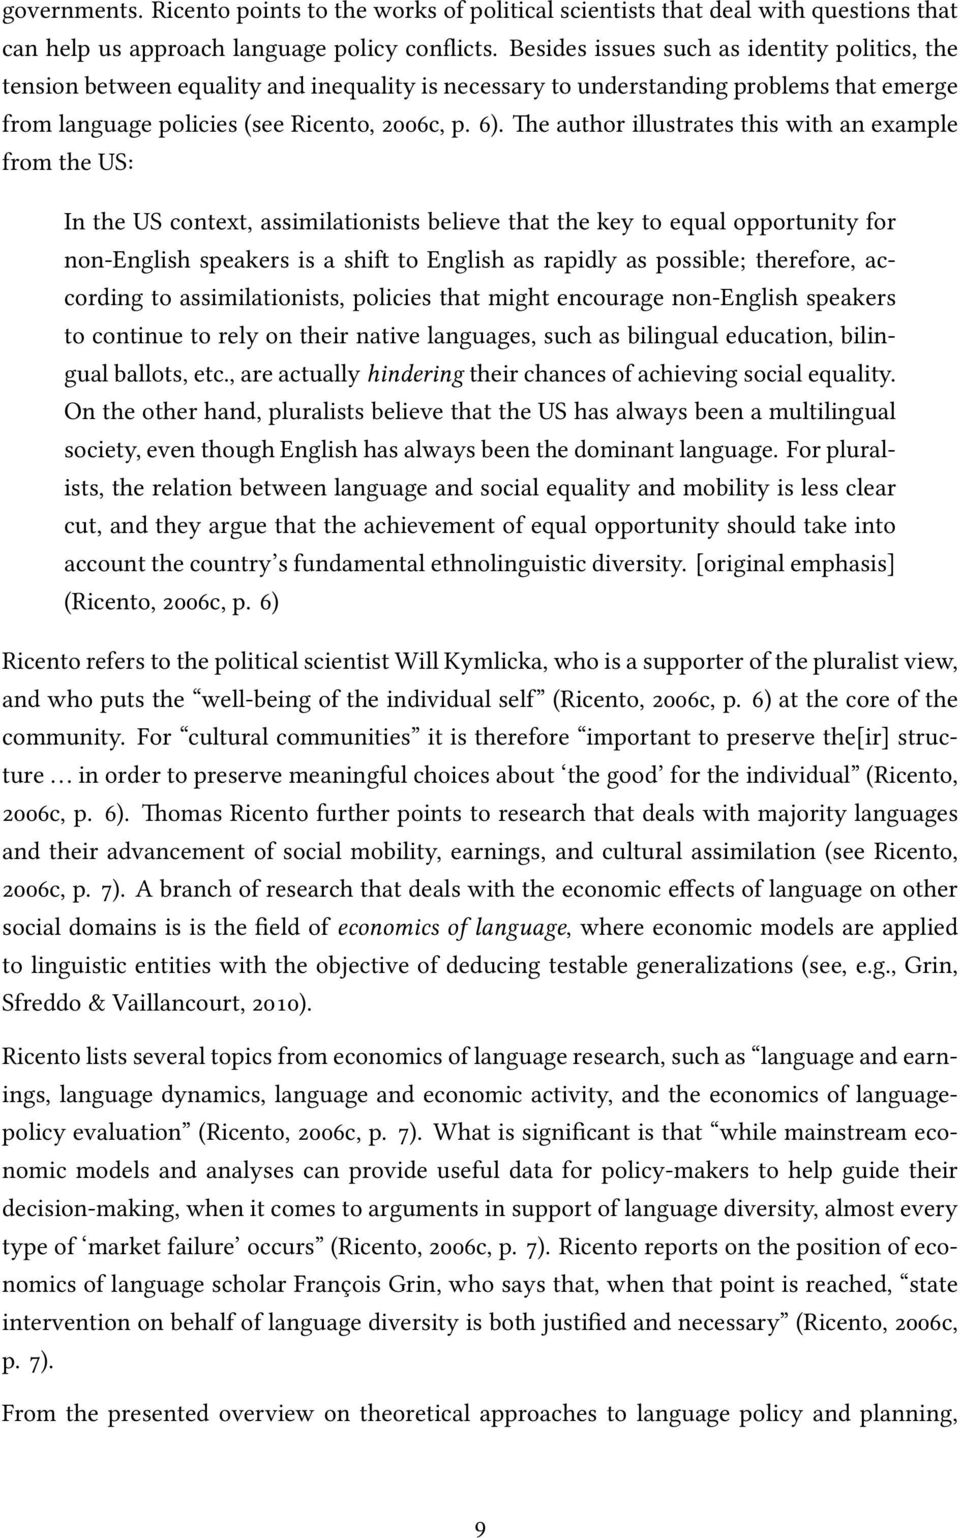 The author illustrates this with an example from the US: In the US context, assimilationists believe that the key to equal opportunity for non-english speakers is a shift to English as rapidly as